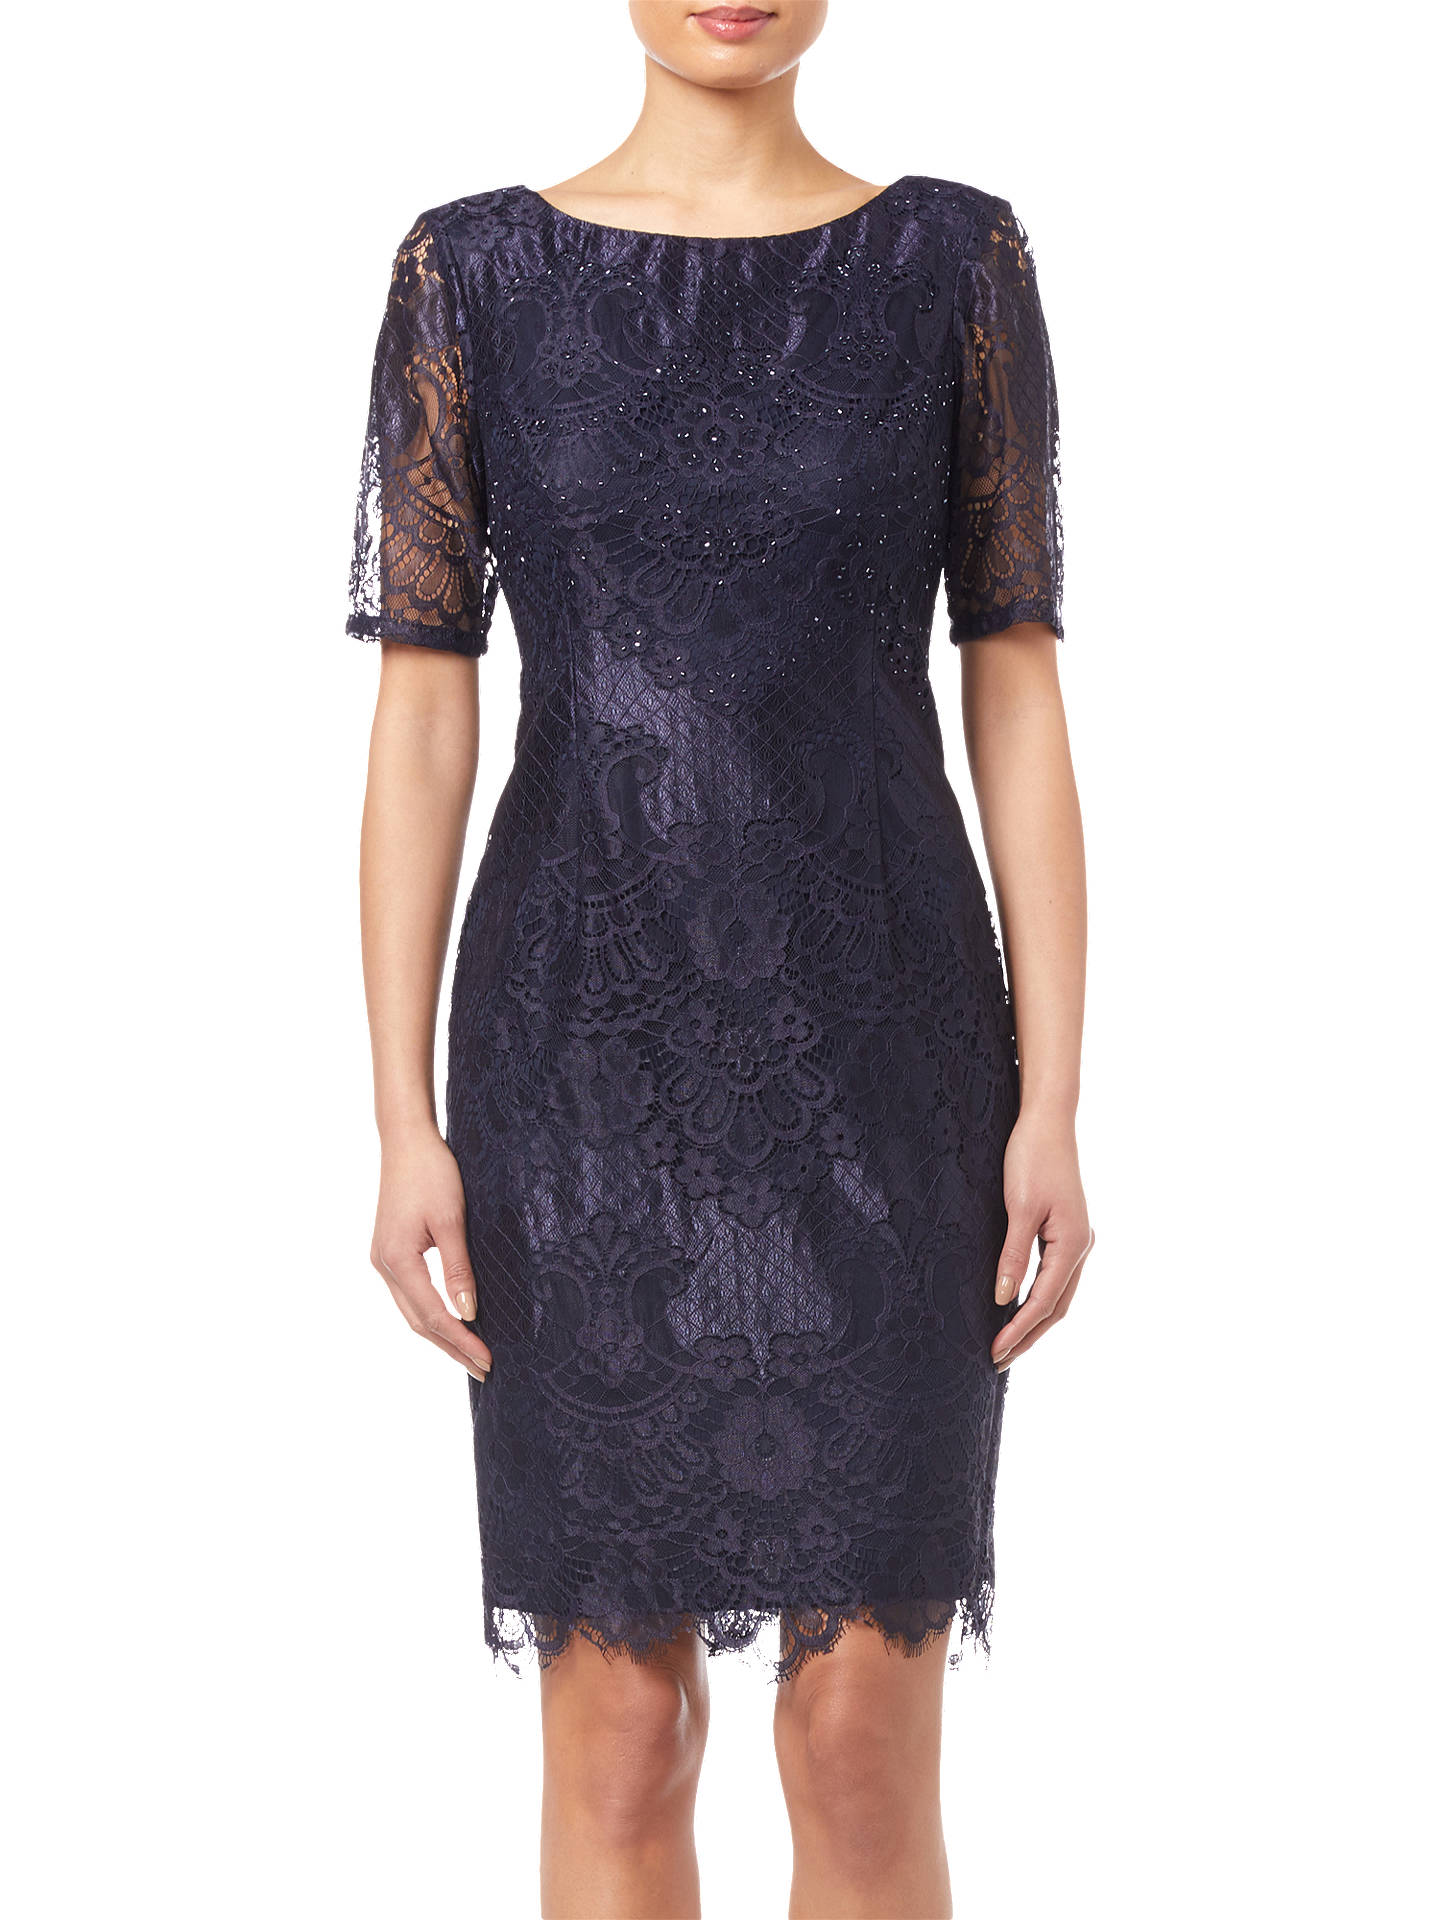 BuyAdrianna Papell Lace Dress, Navy, 8 Online at johnlewis.com